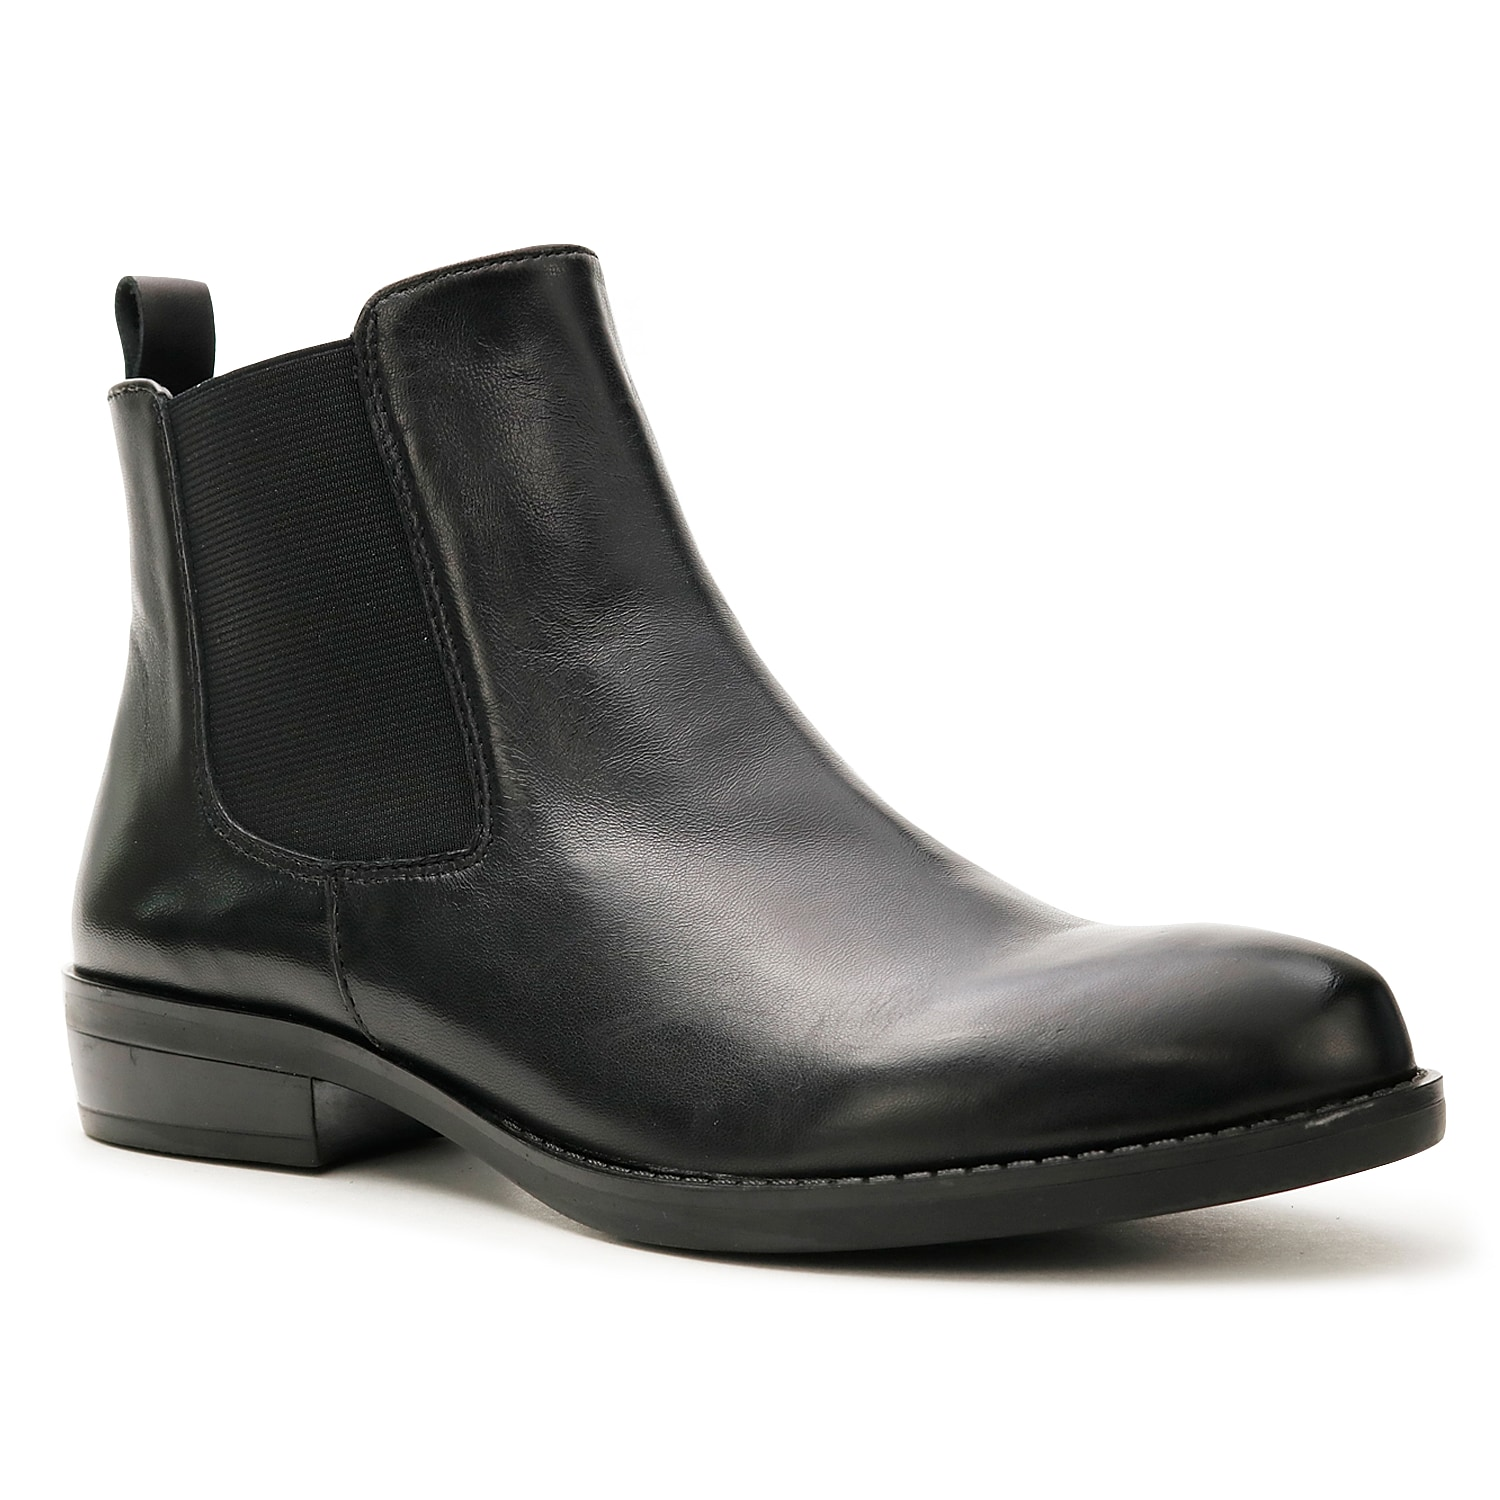 Comfort takes a cool form in the Godiva Chelsea boot from David Tate. Boasting suede upper with stretch gore panels for a snug fit, this pair has soft tricot lining and removable insole for superb in-shoe feel.Click here for Boot Measuring Guide.